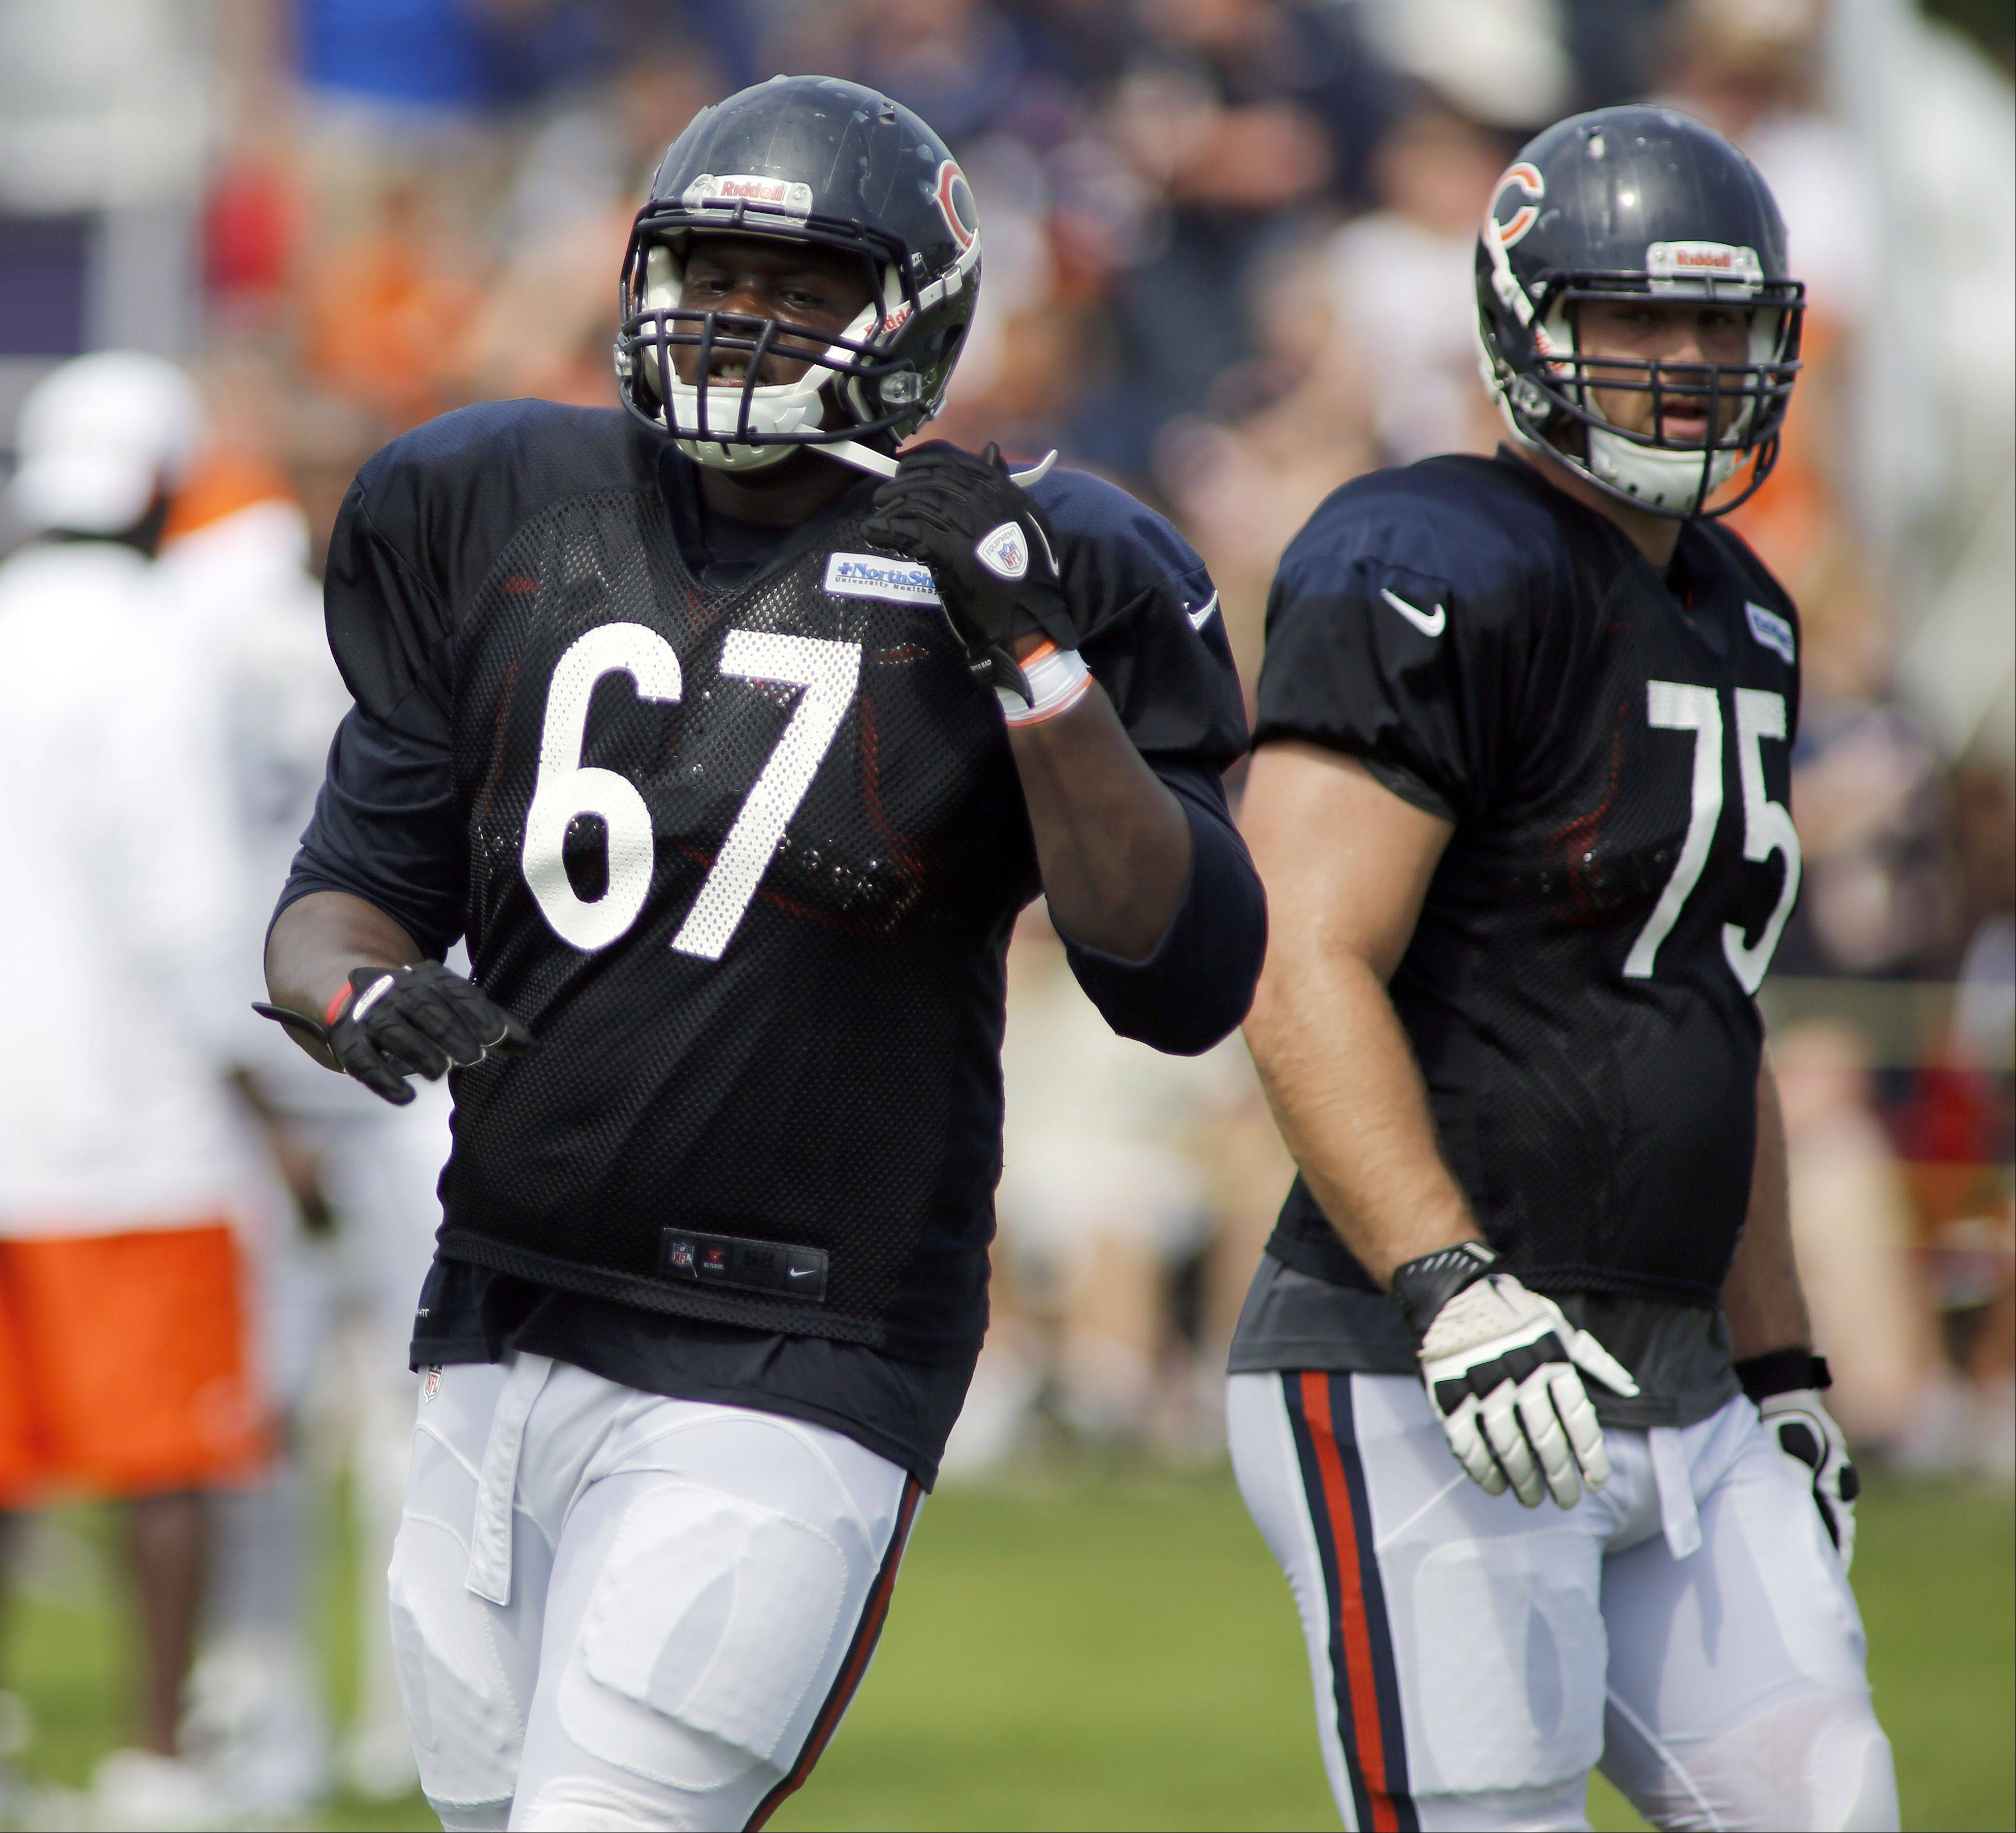 Offensive linemen Jordan Mills (67) and Kyle Long earned the praise of Bears coach Marc Trestman for their performance in practice Monday.